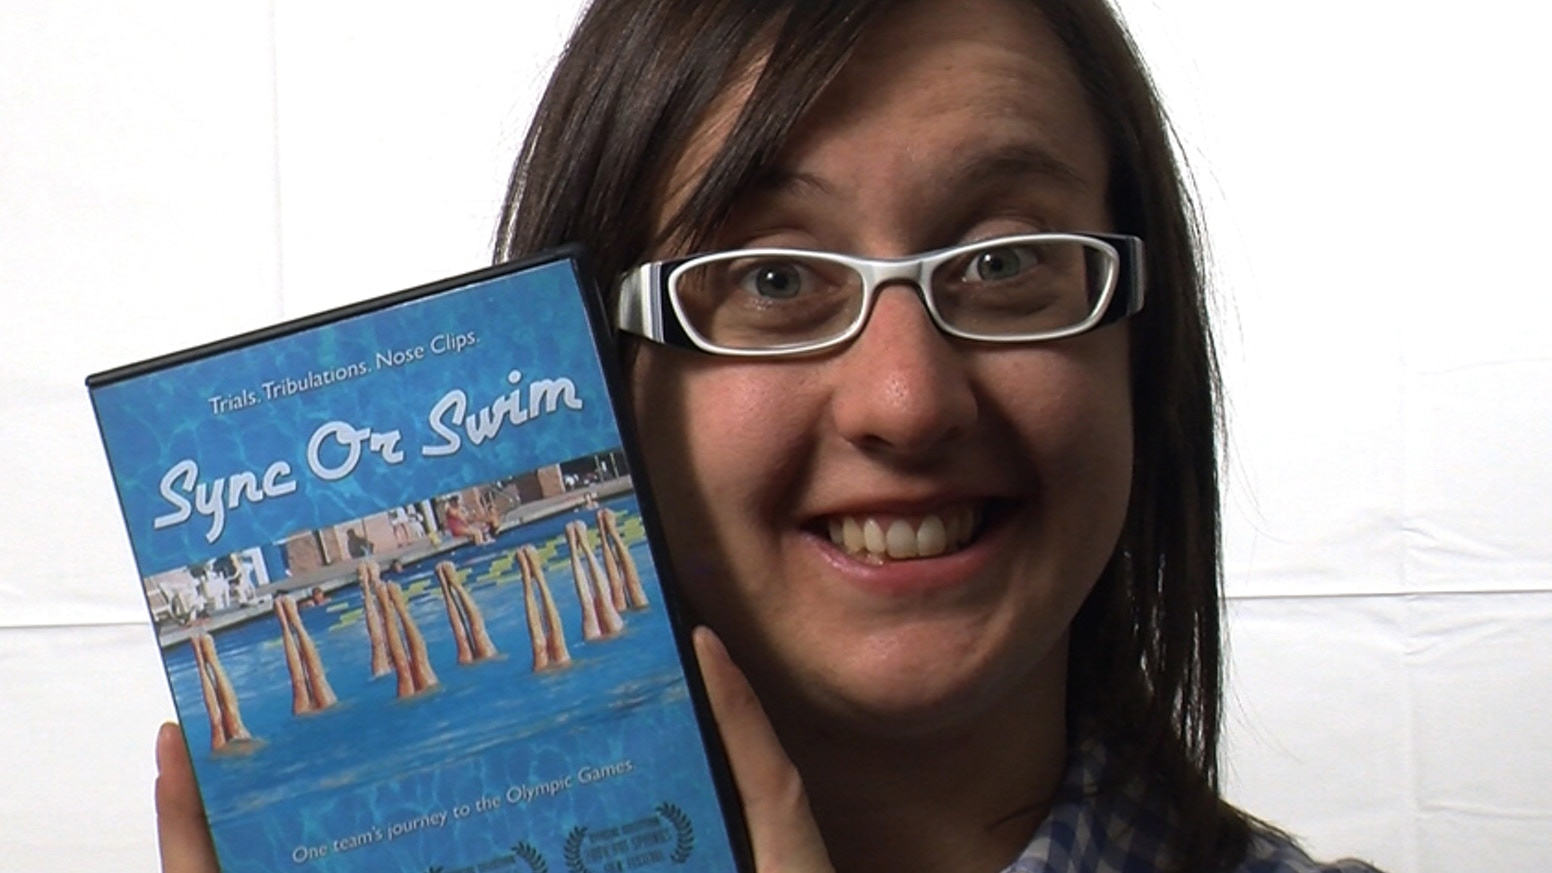 Make A Splash! Prebuy The Sync Or Swim Dvd Today! By Cheryl Furjanic &  Will Sweeney €� Kickstarter